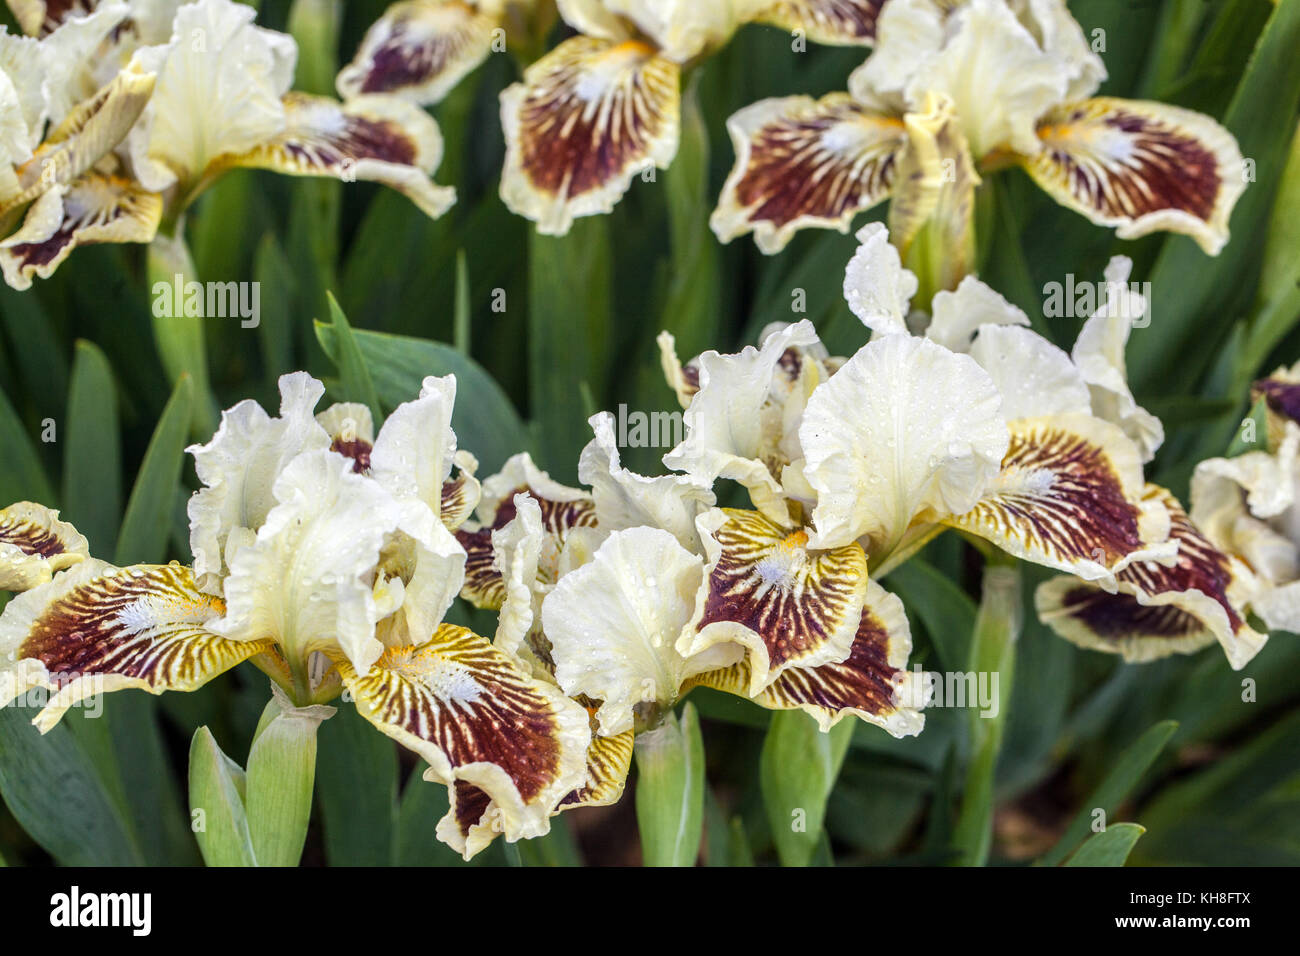 iris barbata nana dwarf iris stockfotos iris barbata nana dwarf iris bilder alamy. Black Bedroom Furniture Sets. Home Design Ideas